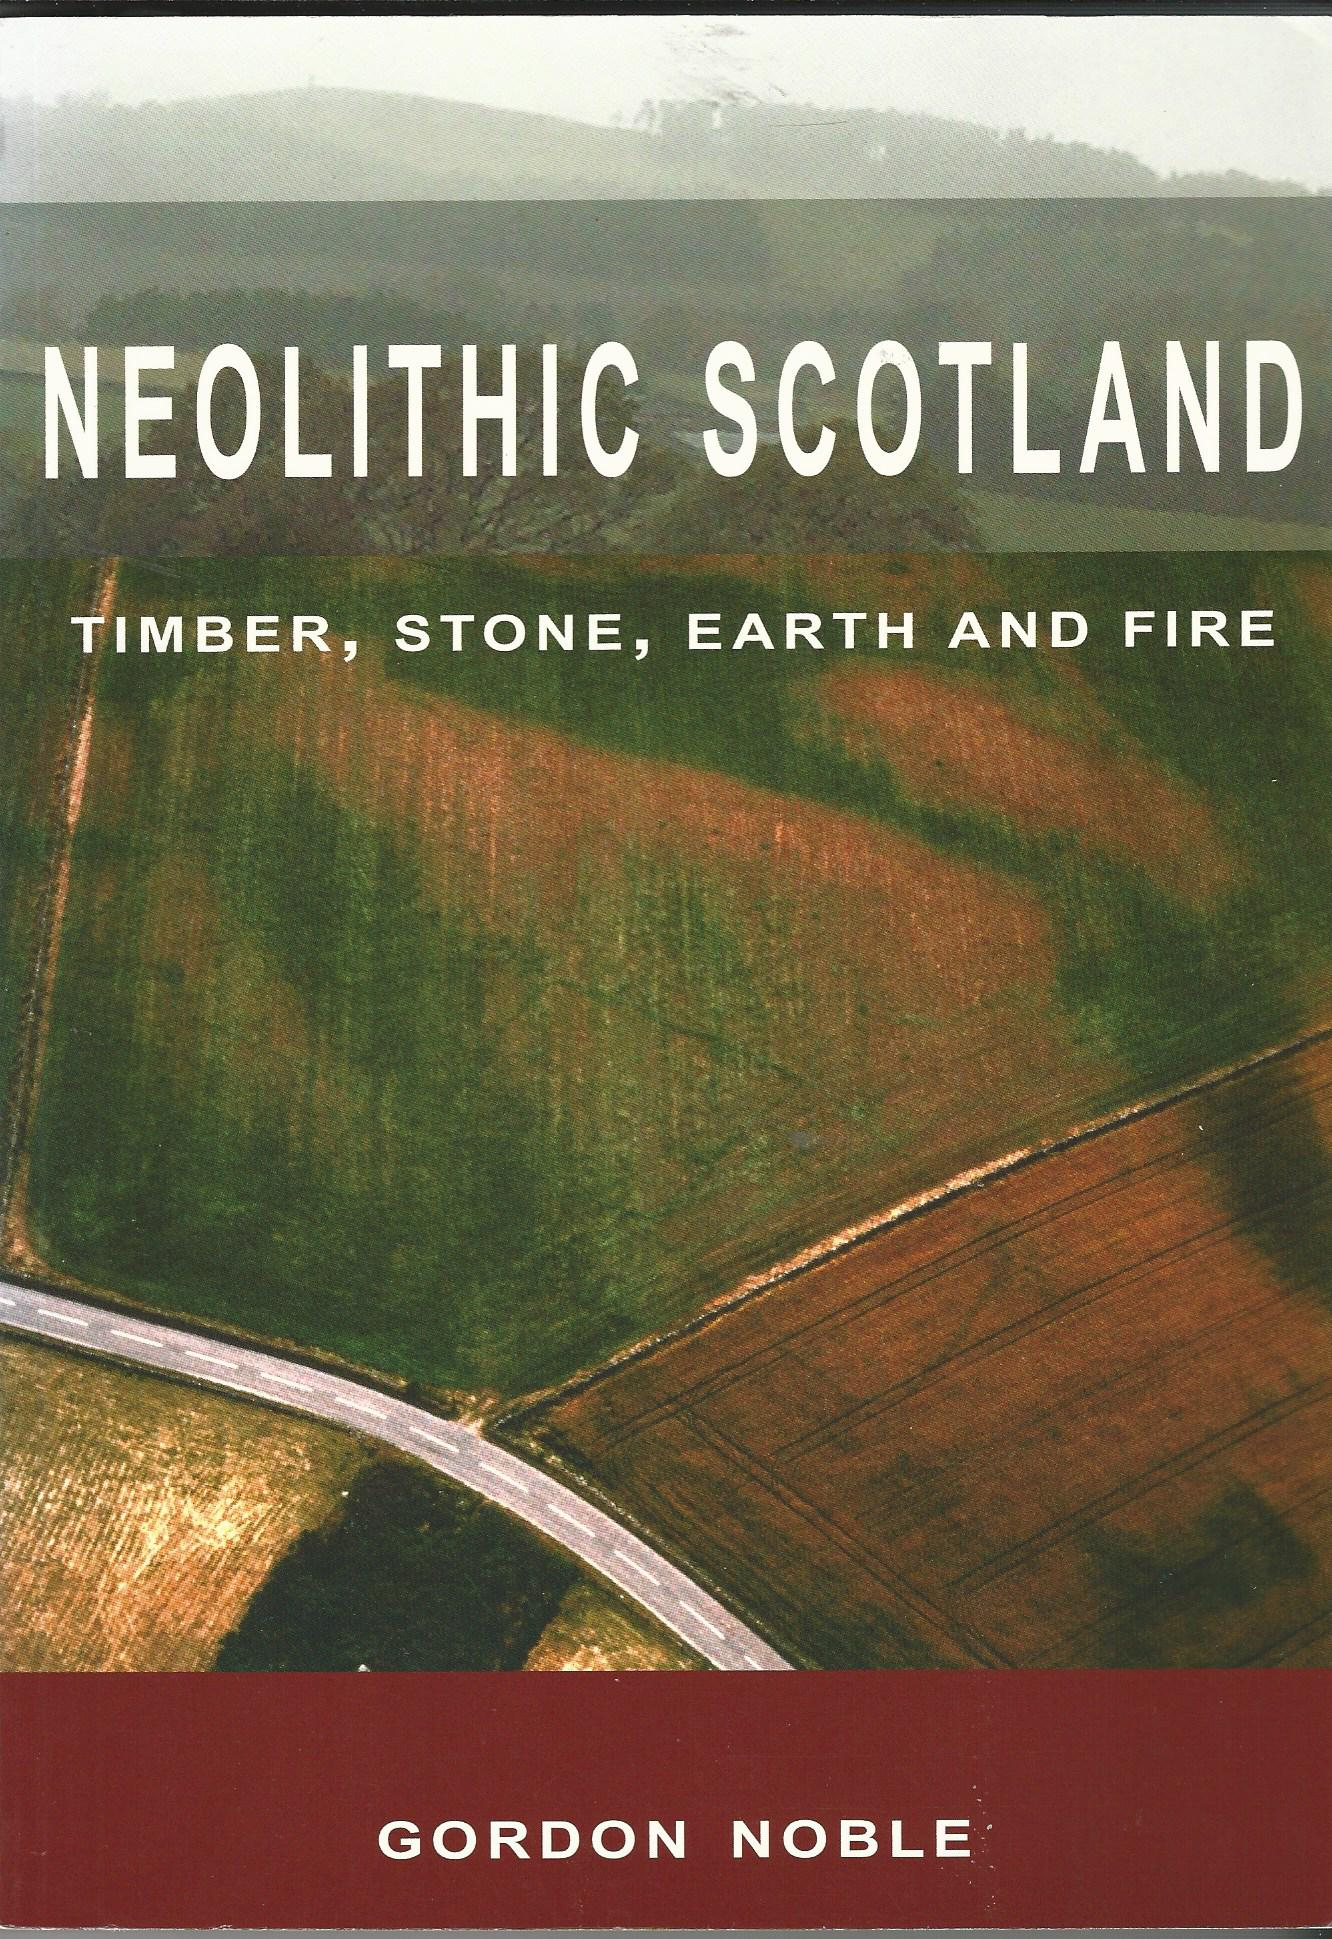 Image for Neolithic Scotland: Timber, Stone, Earth and Fire.